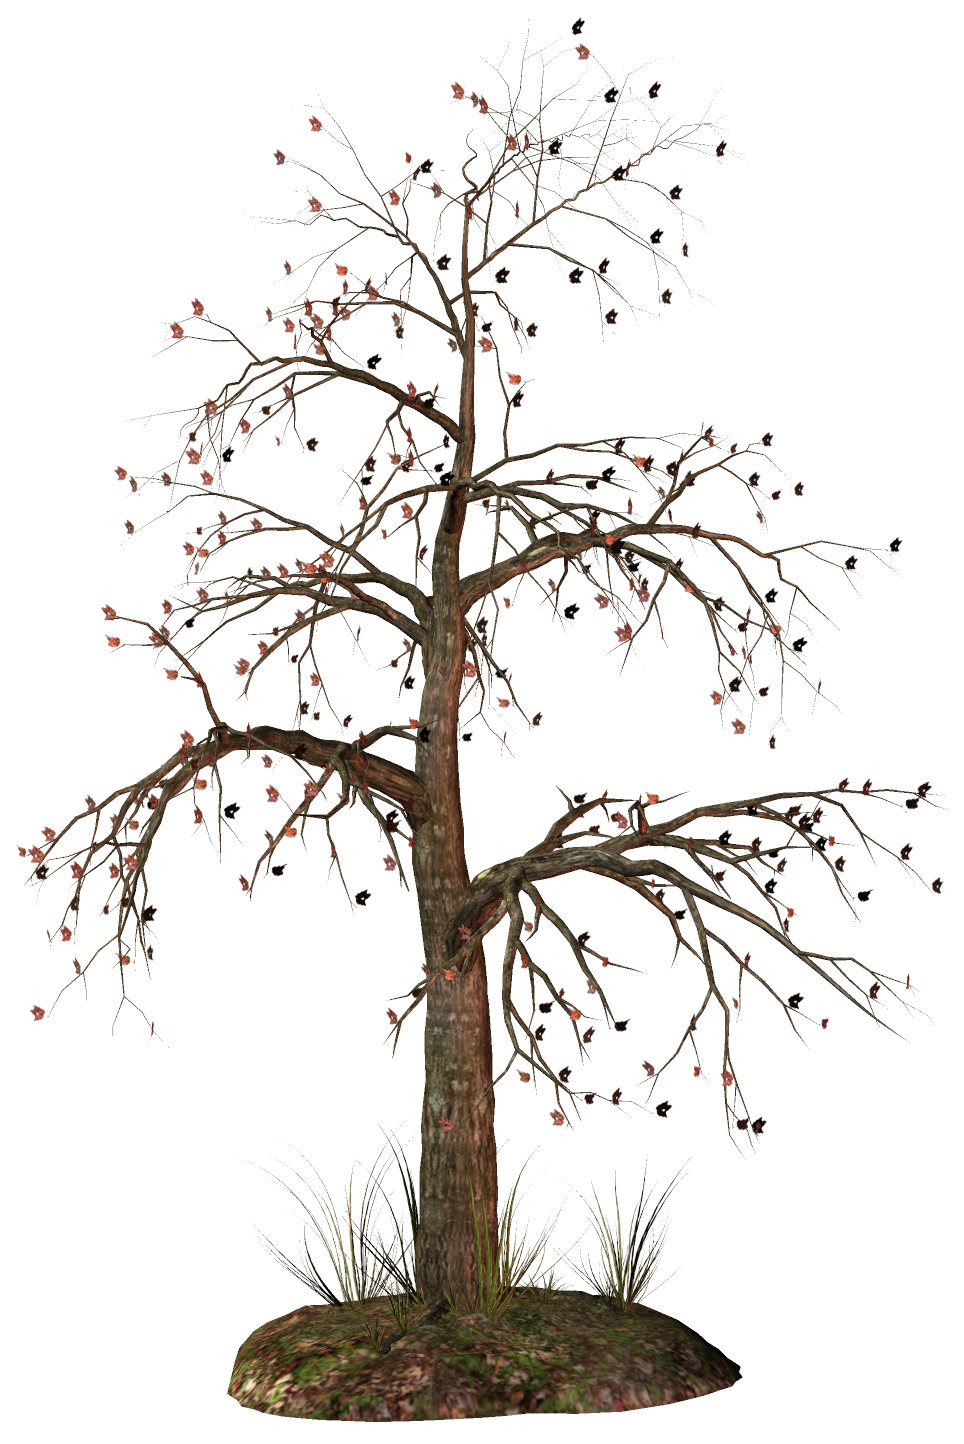 Png gallery yopriceville high. Dead clipart apple tree graphic transparent